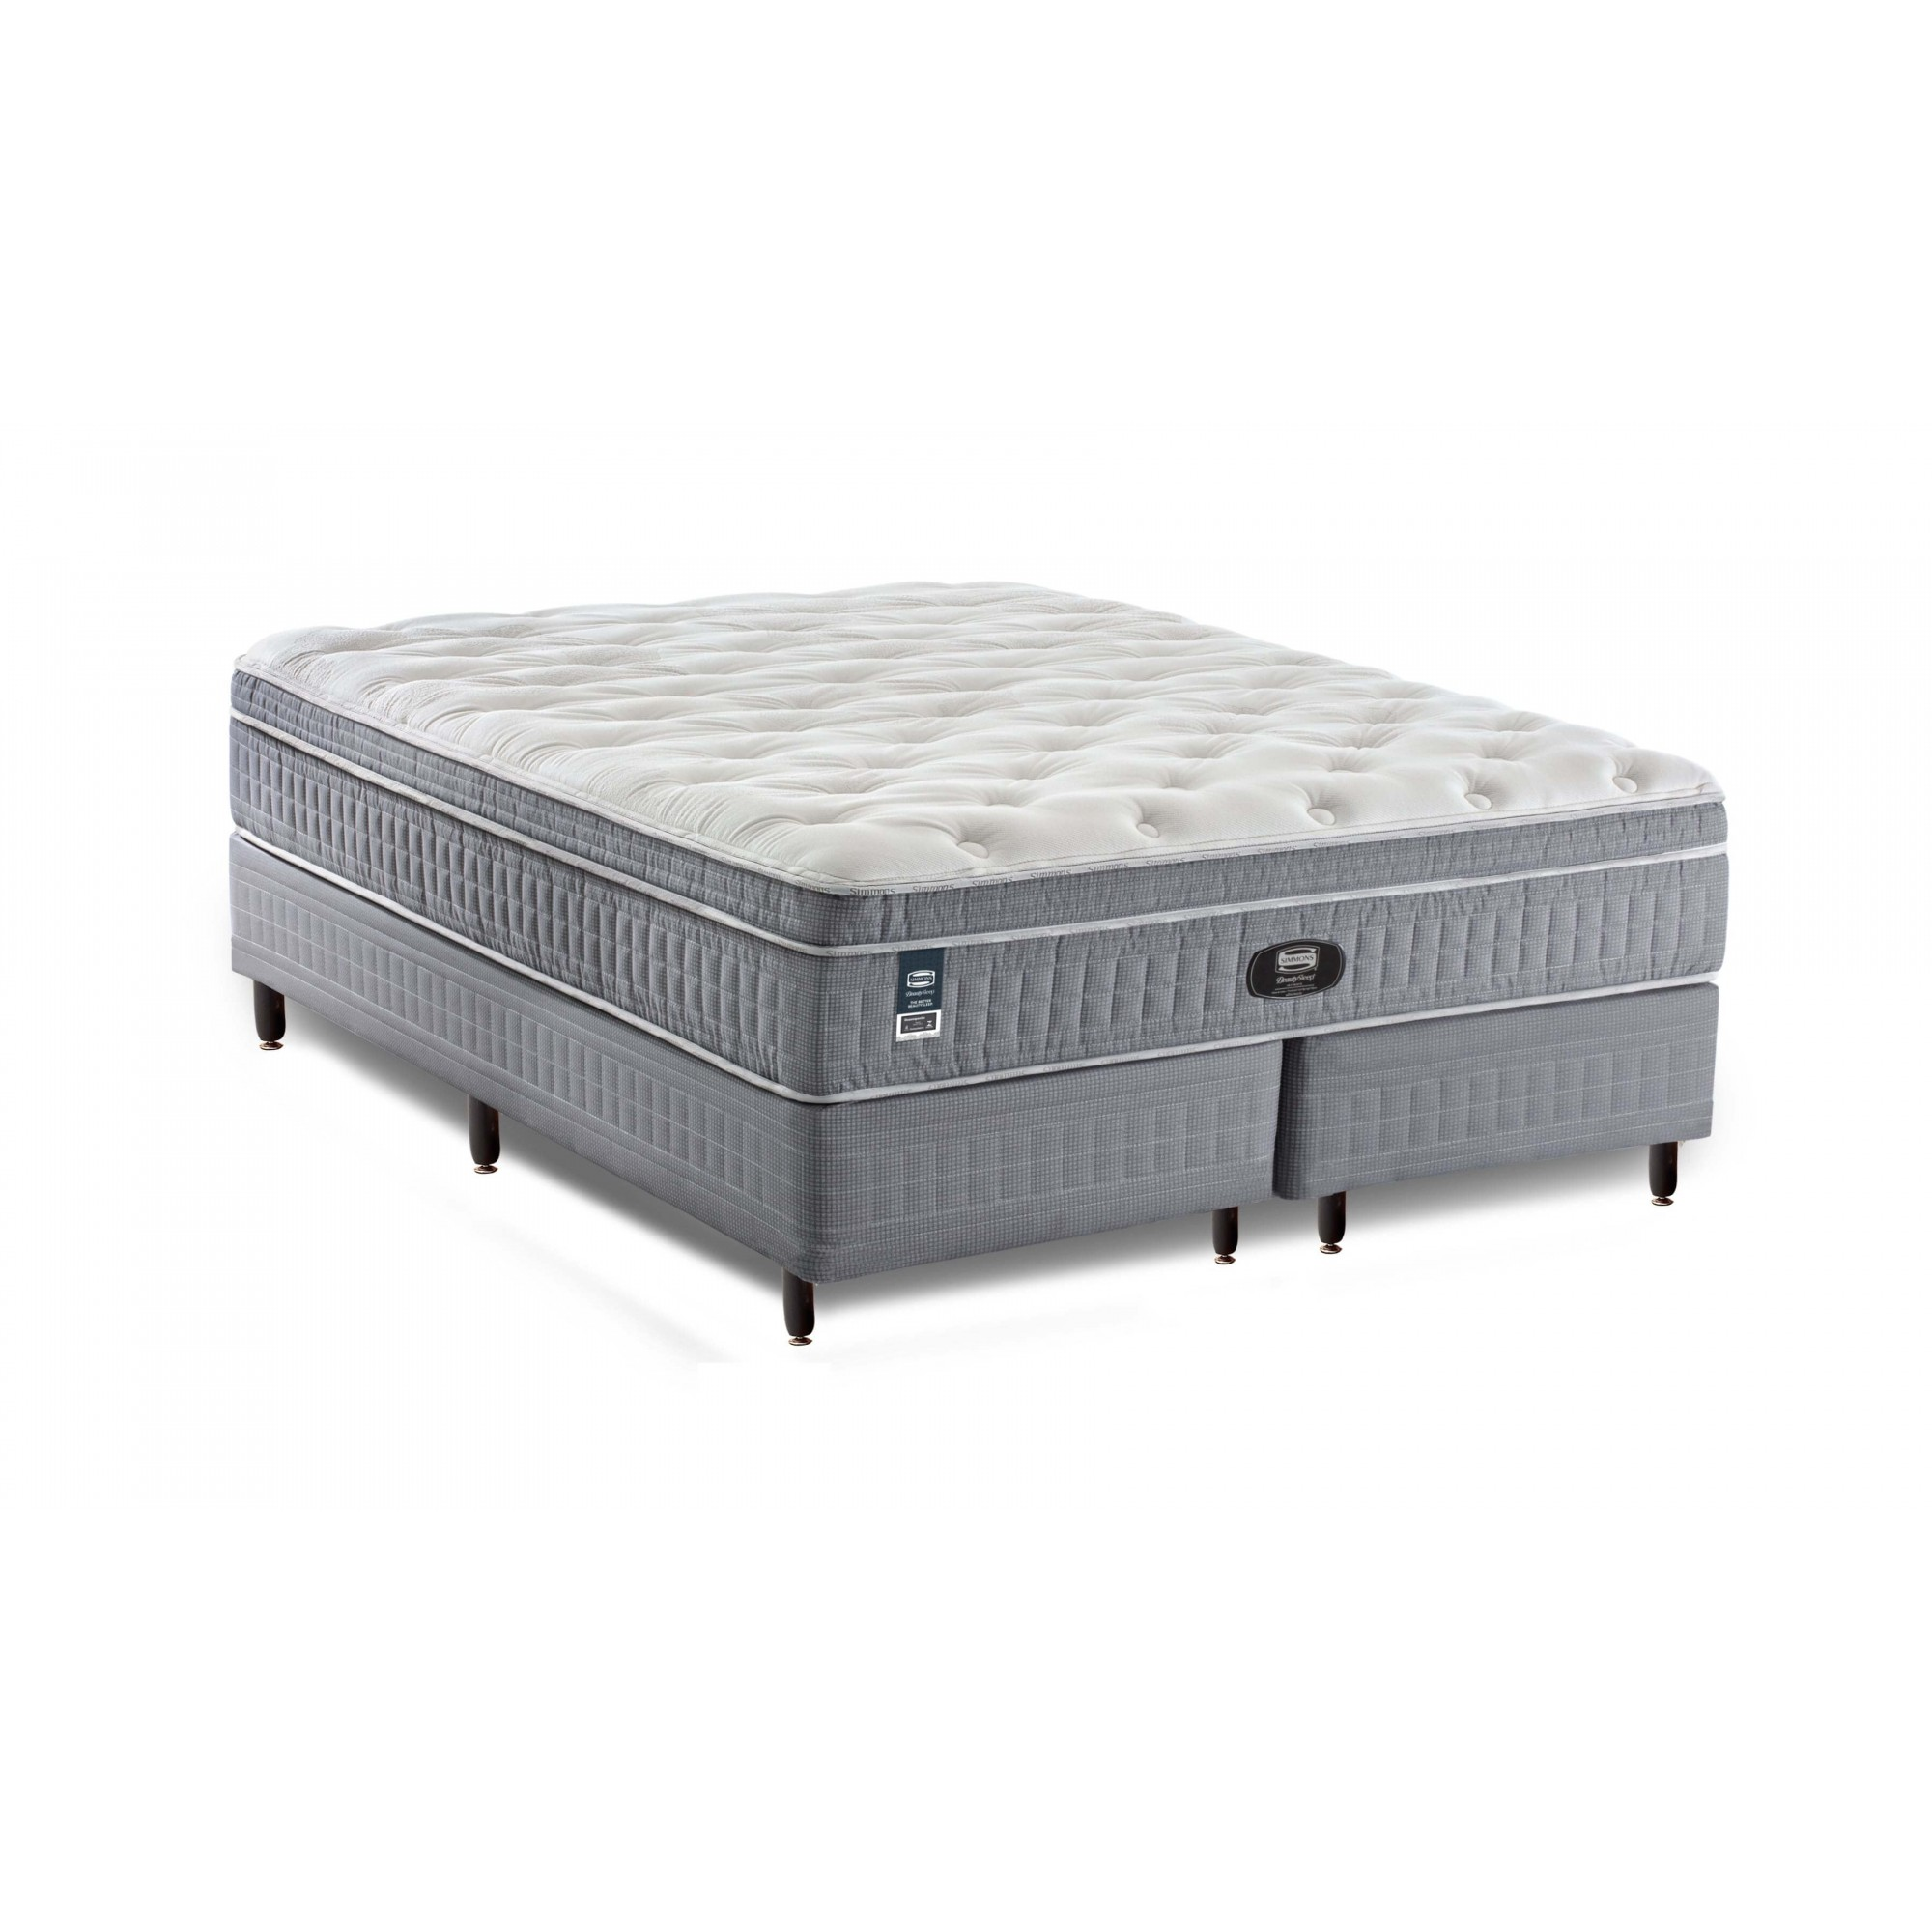 Cama Box Com Colchão King Size Finesse Beautysleep Simmons Molas Ensacadas